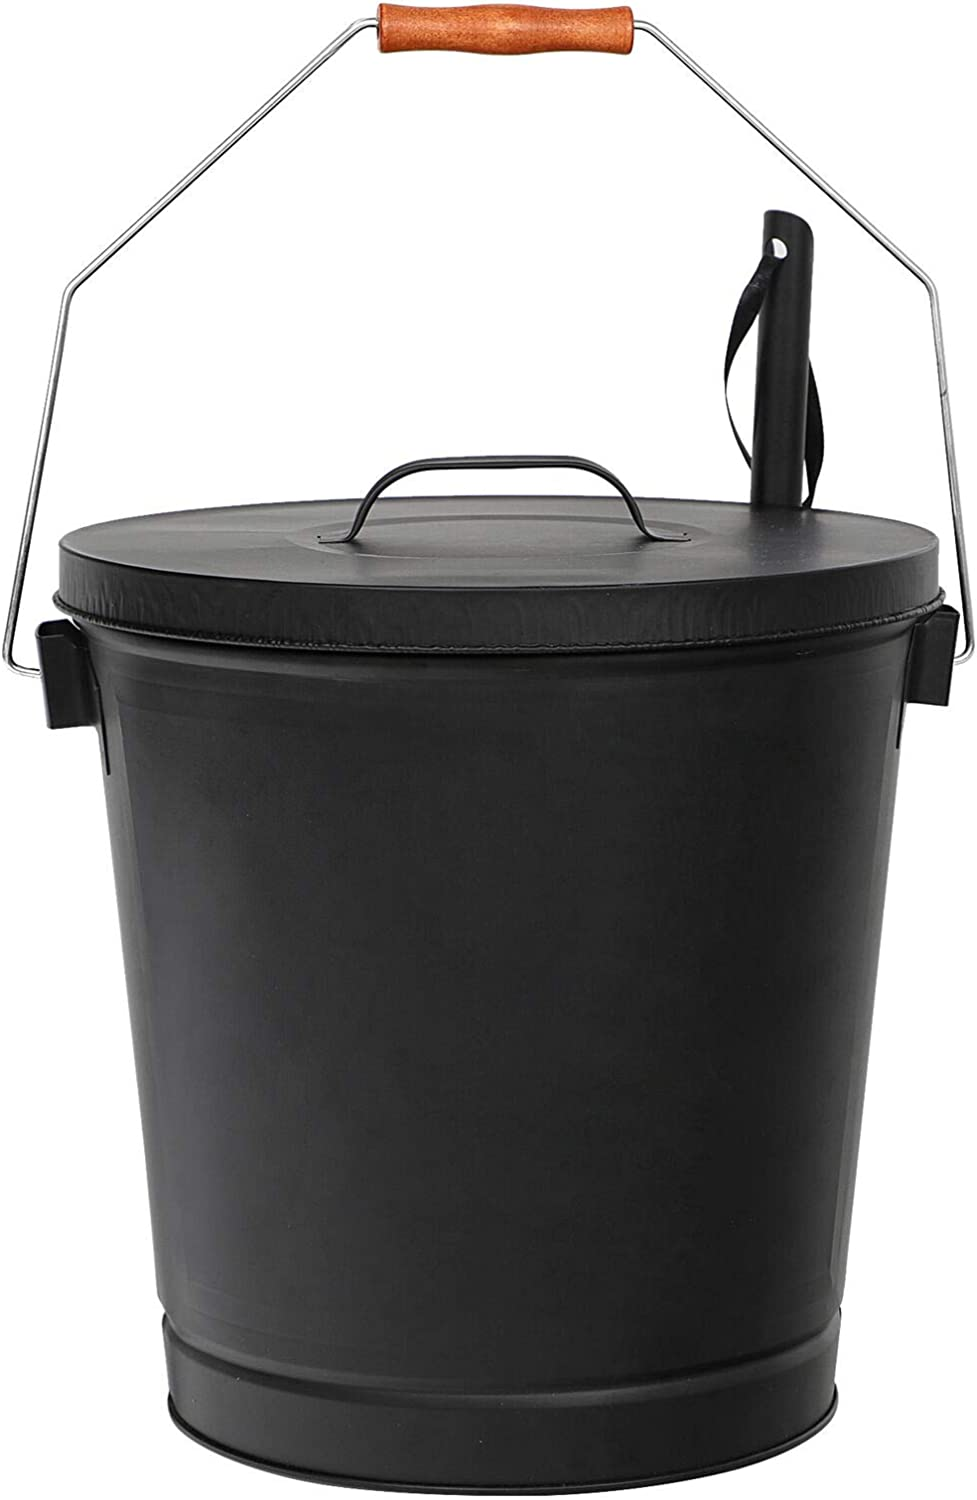 Designed Safely Ash Bucket 5 Gallon Shovel and with Black Lid fo Tucson Mall Super Special SALE held